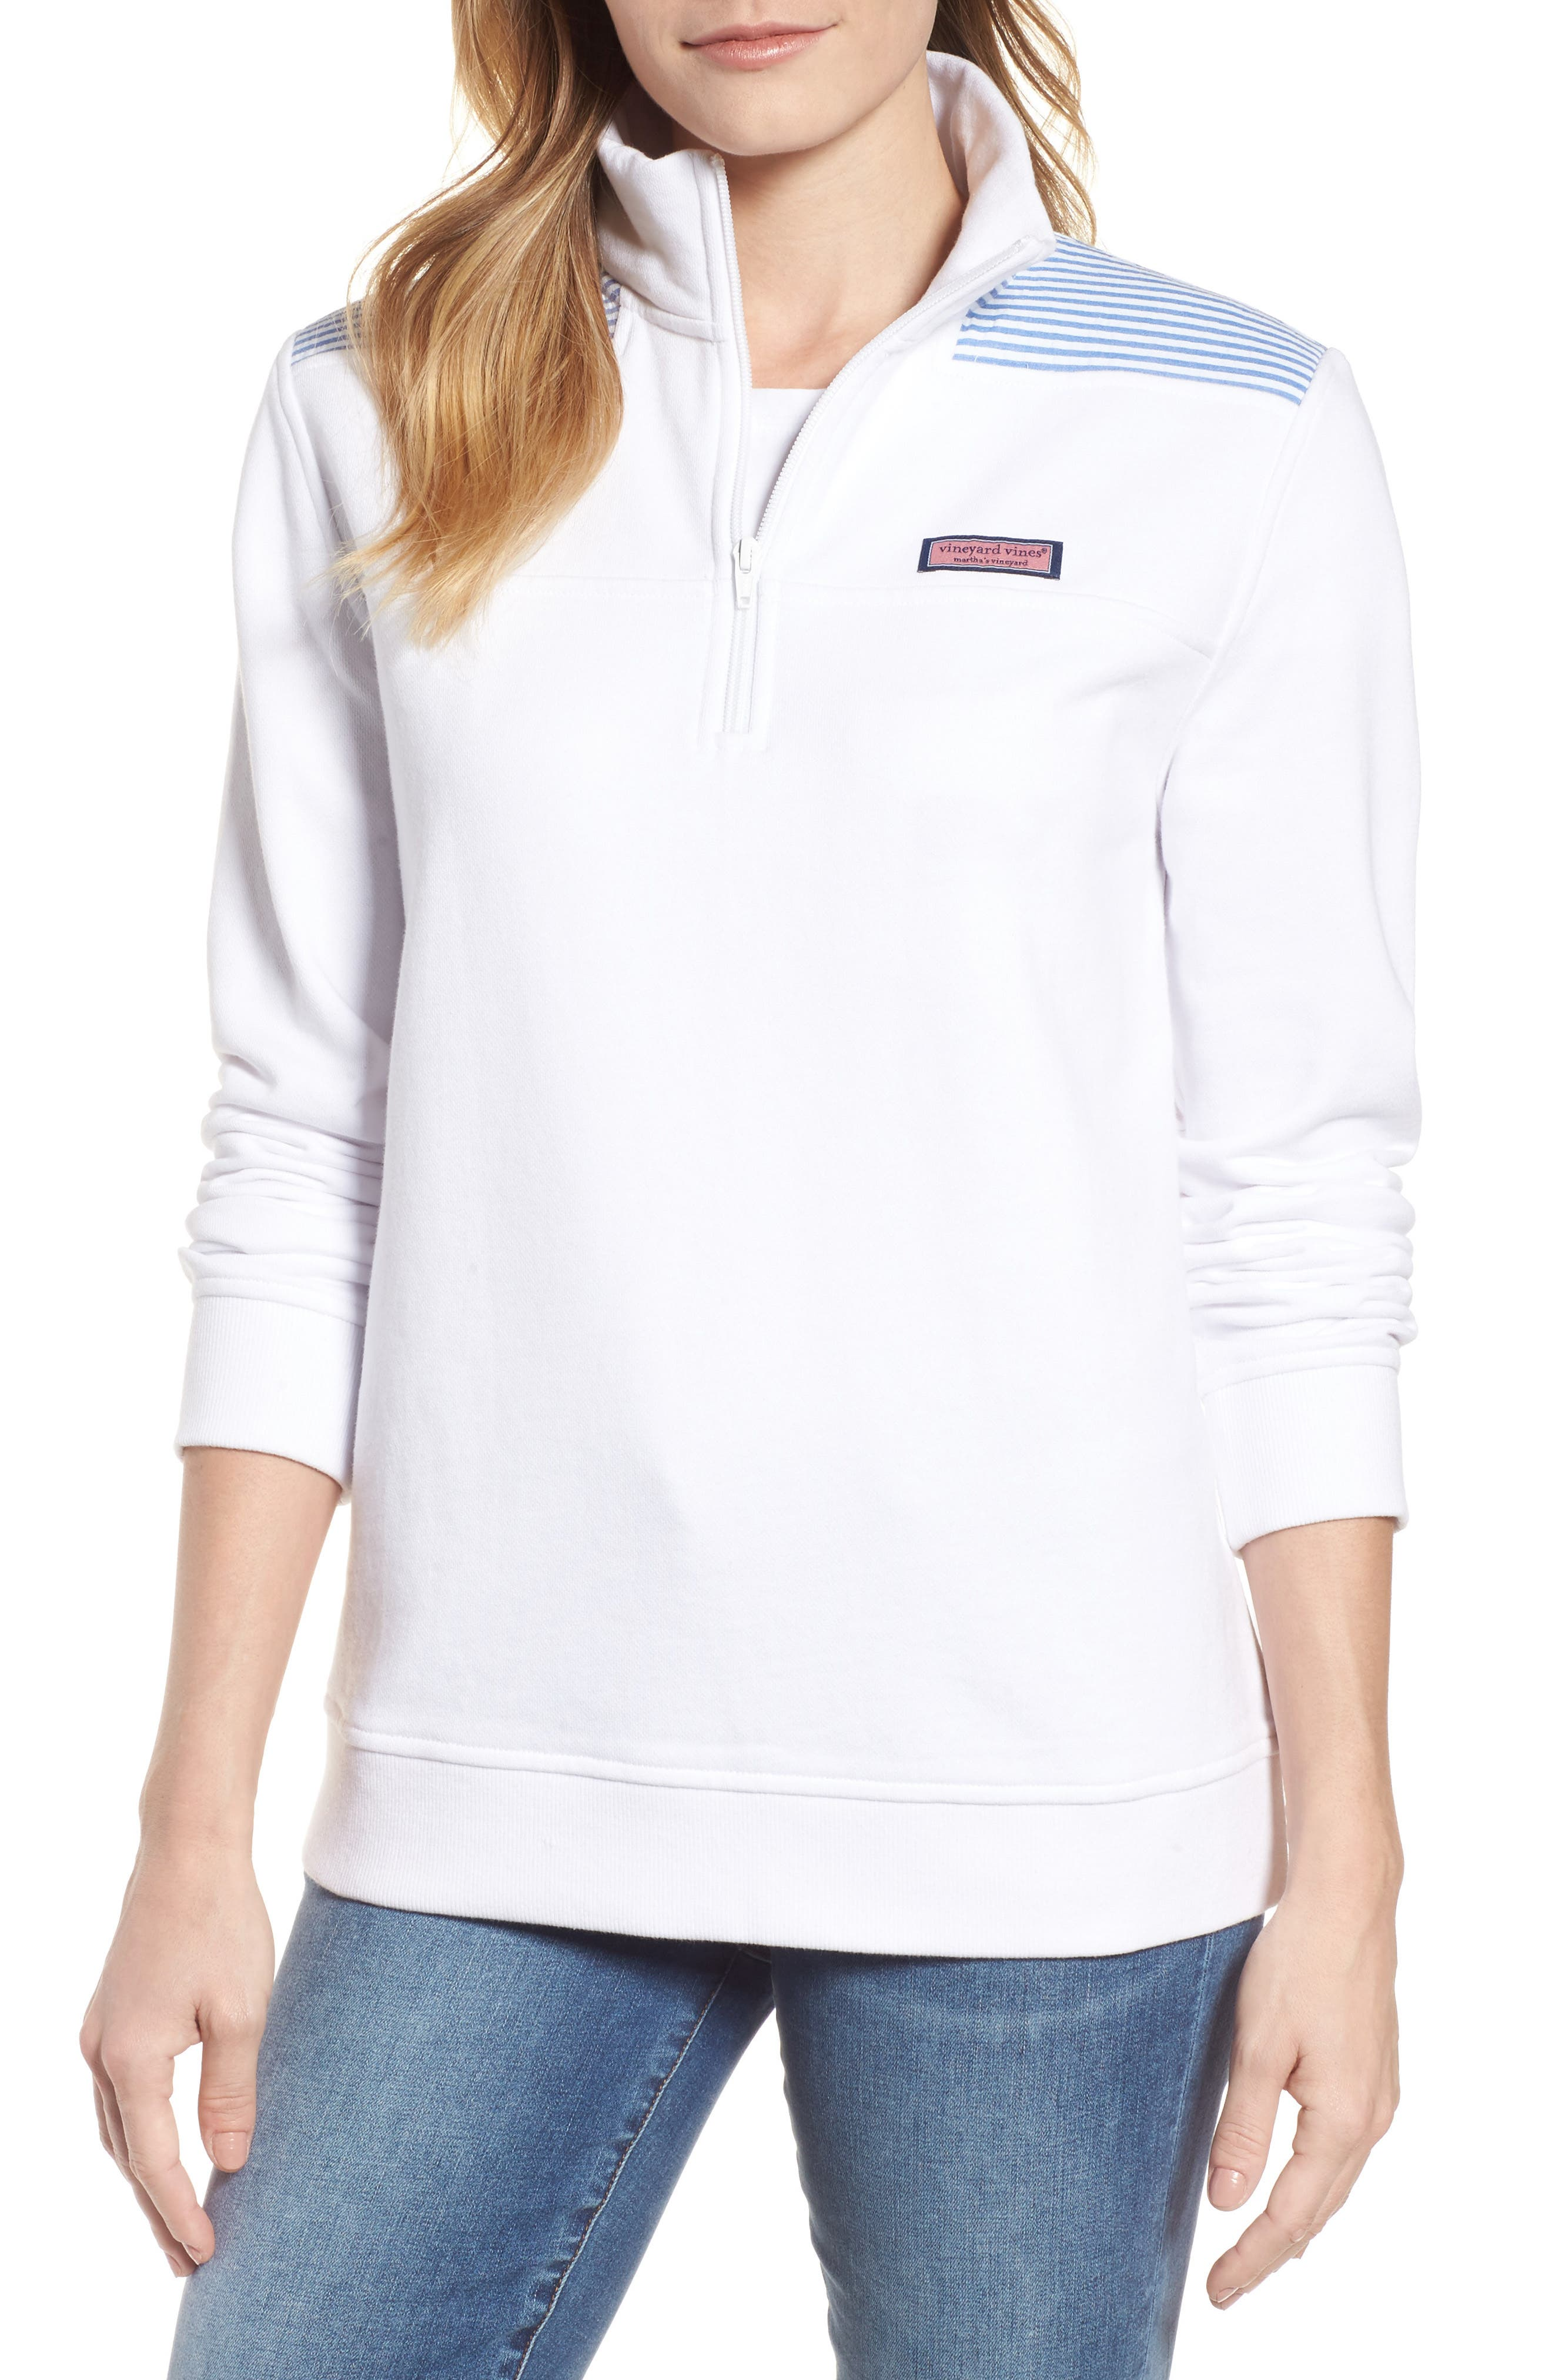 Alternate Image 1 Selected - vineyard vines Shep Quarter Zip Pullover